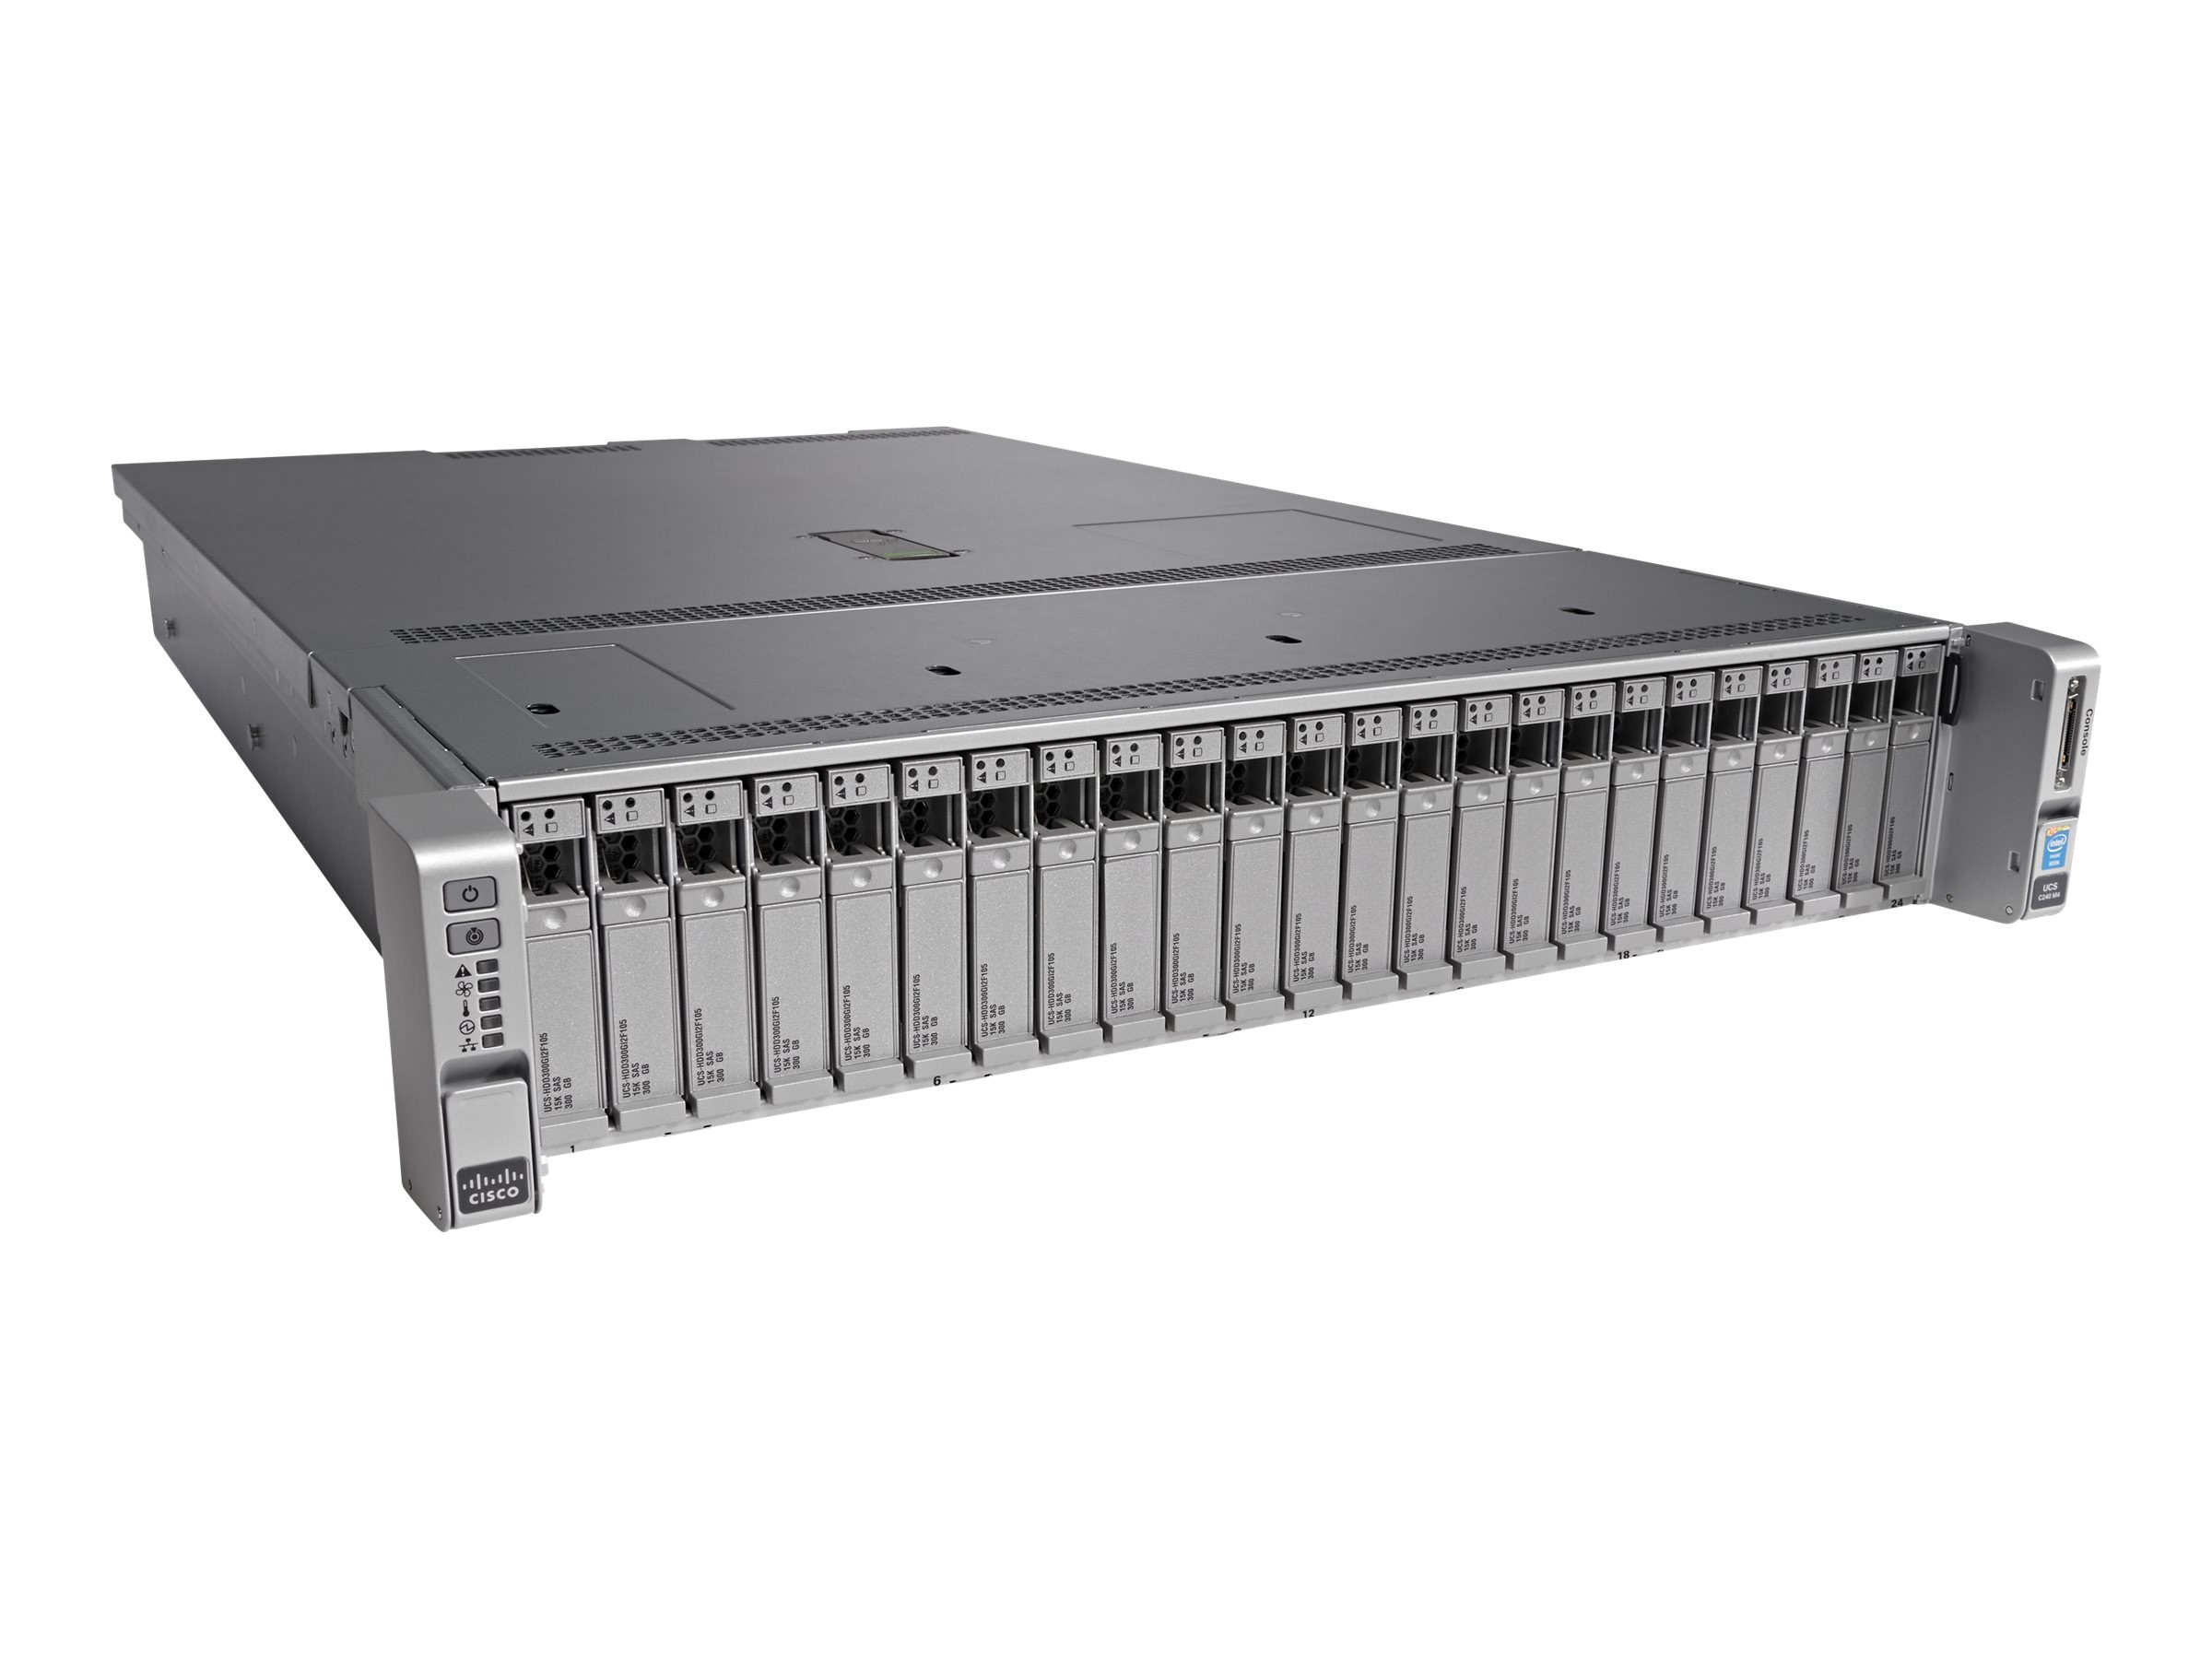 Cisco UCS-SP-C240M4-B-F1 Image 5